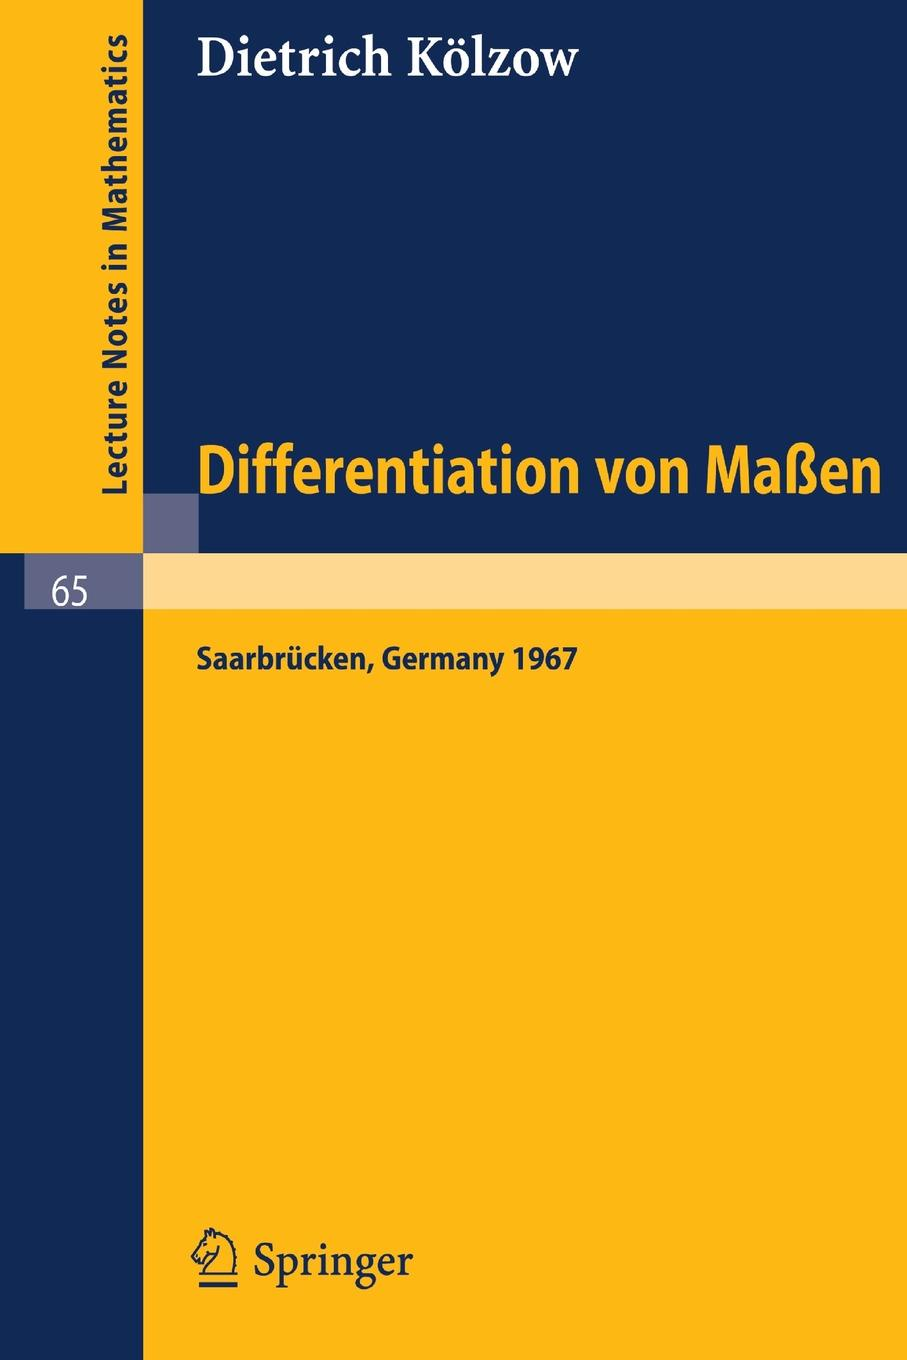 купить Dietrich Kalzow, Dietrich K. Lzow, Dietrich Kolzow Differentiation Von Massen по цене 3964 рублей